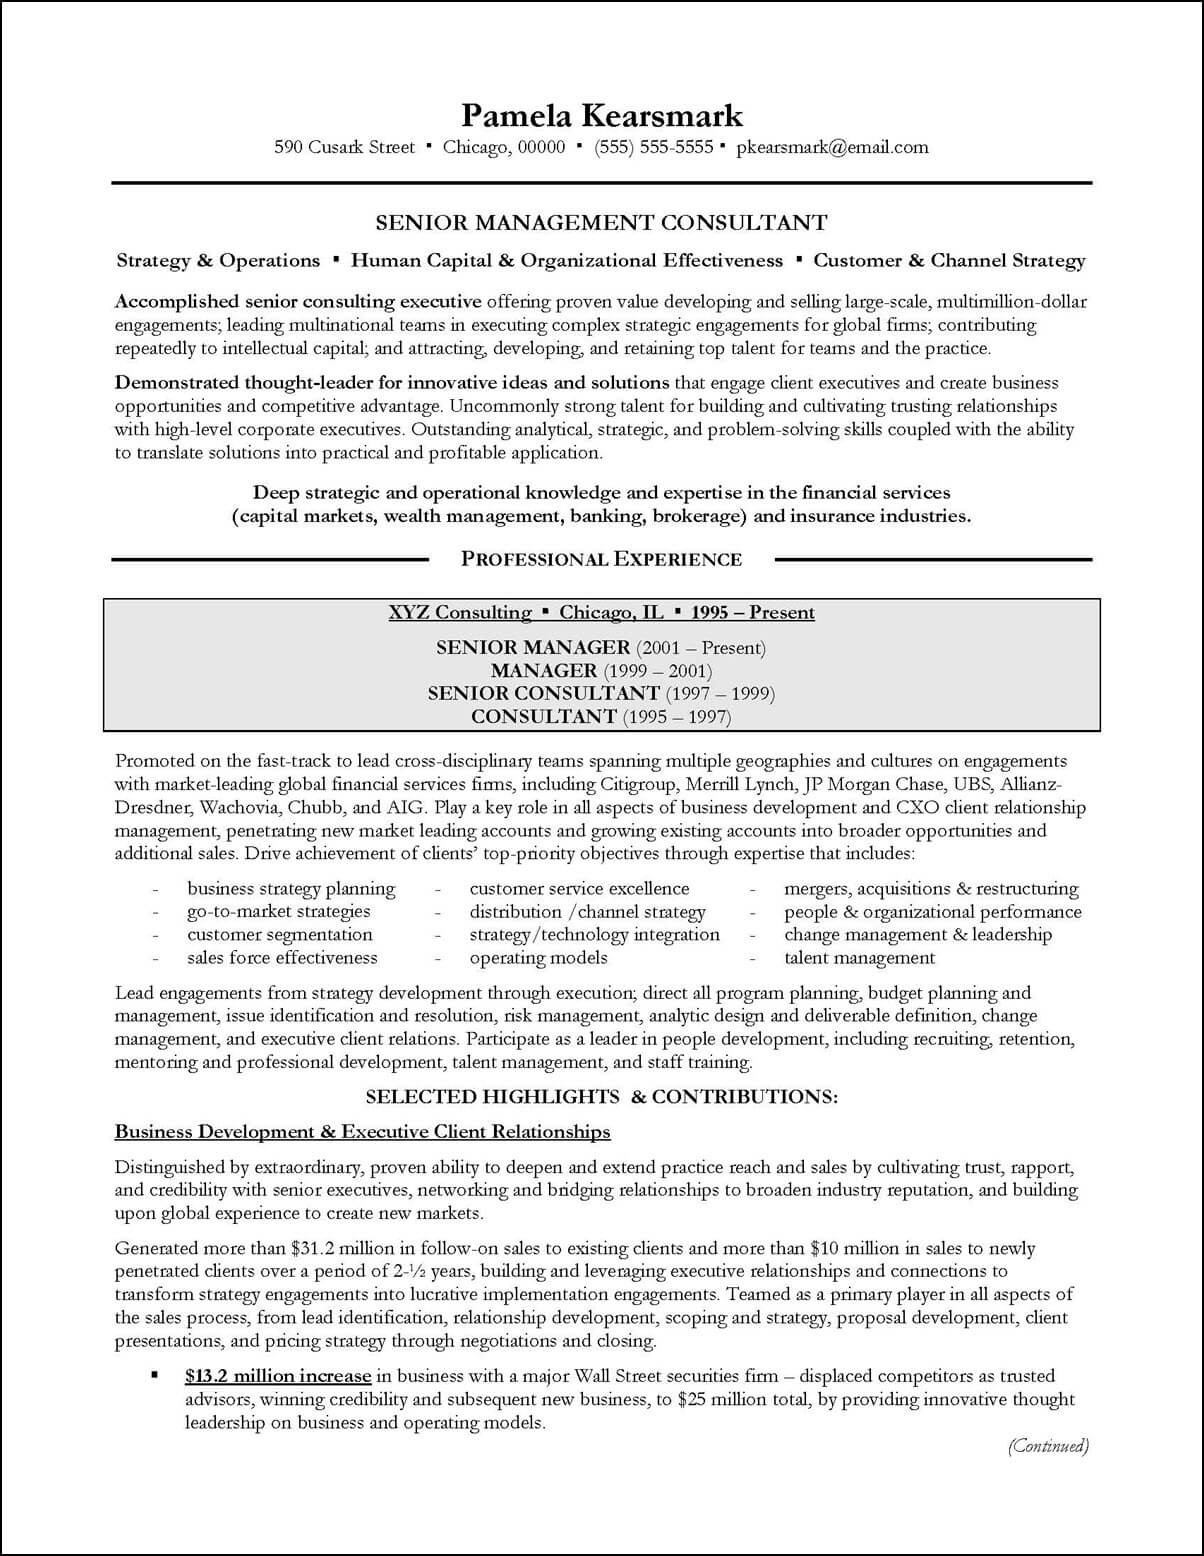 management consulting resume example page 1 - Sample Consultant Resumes 10 Top Consultant Resume Examples